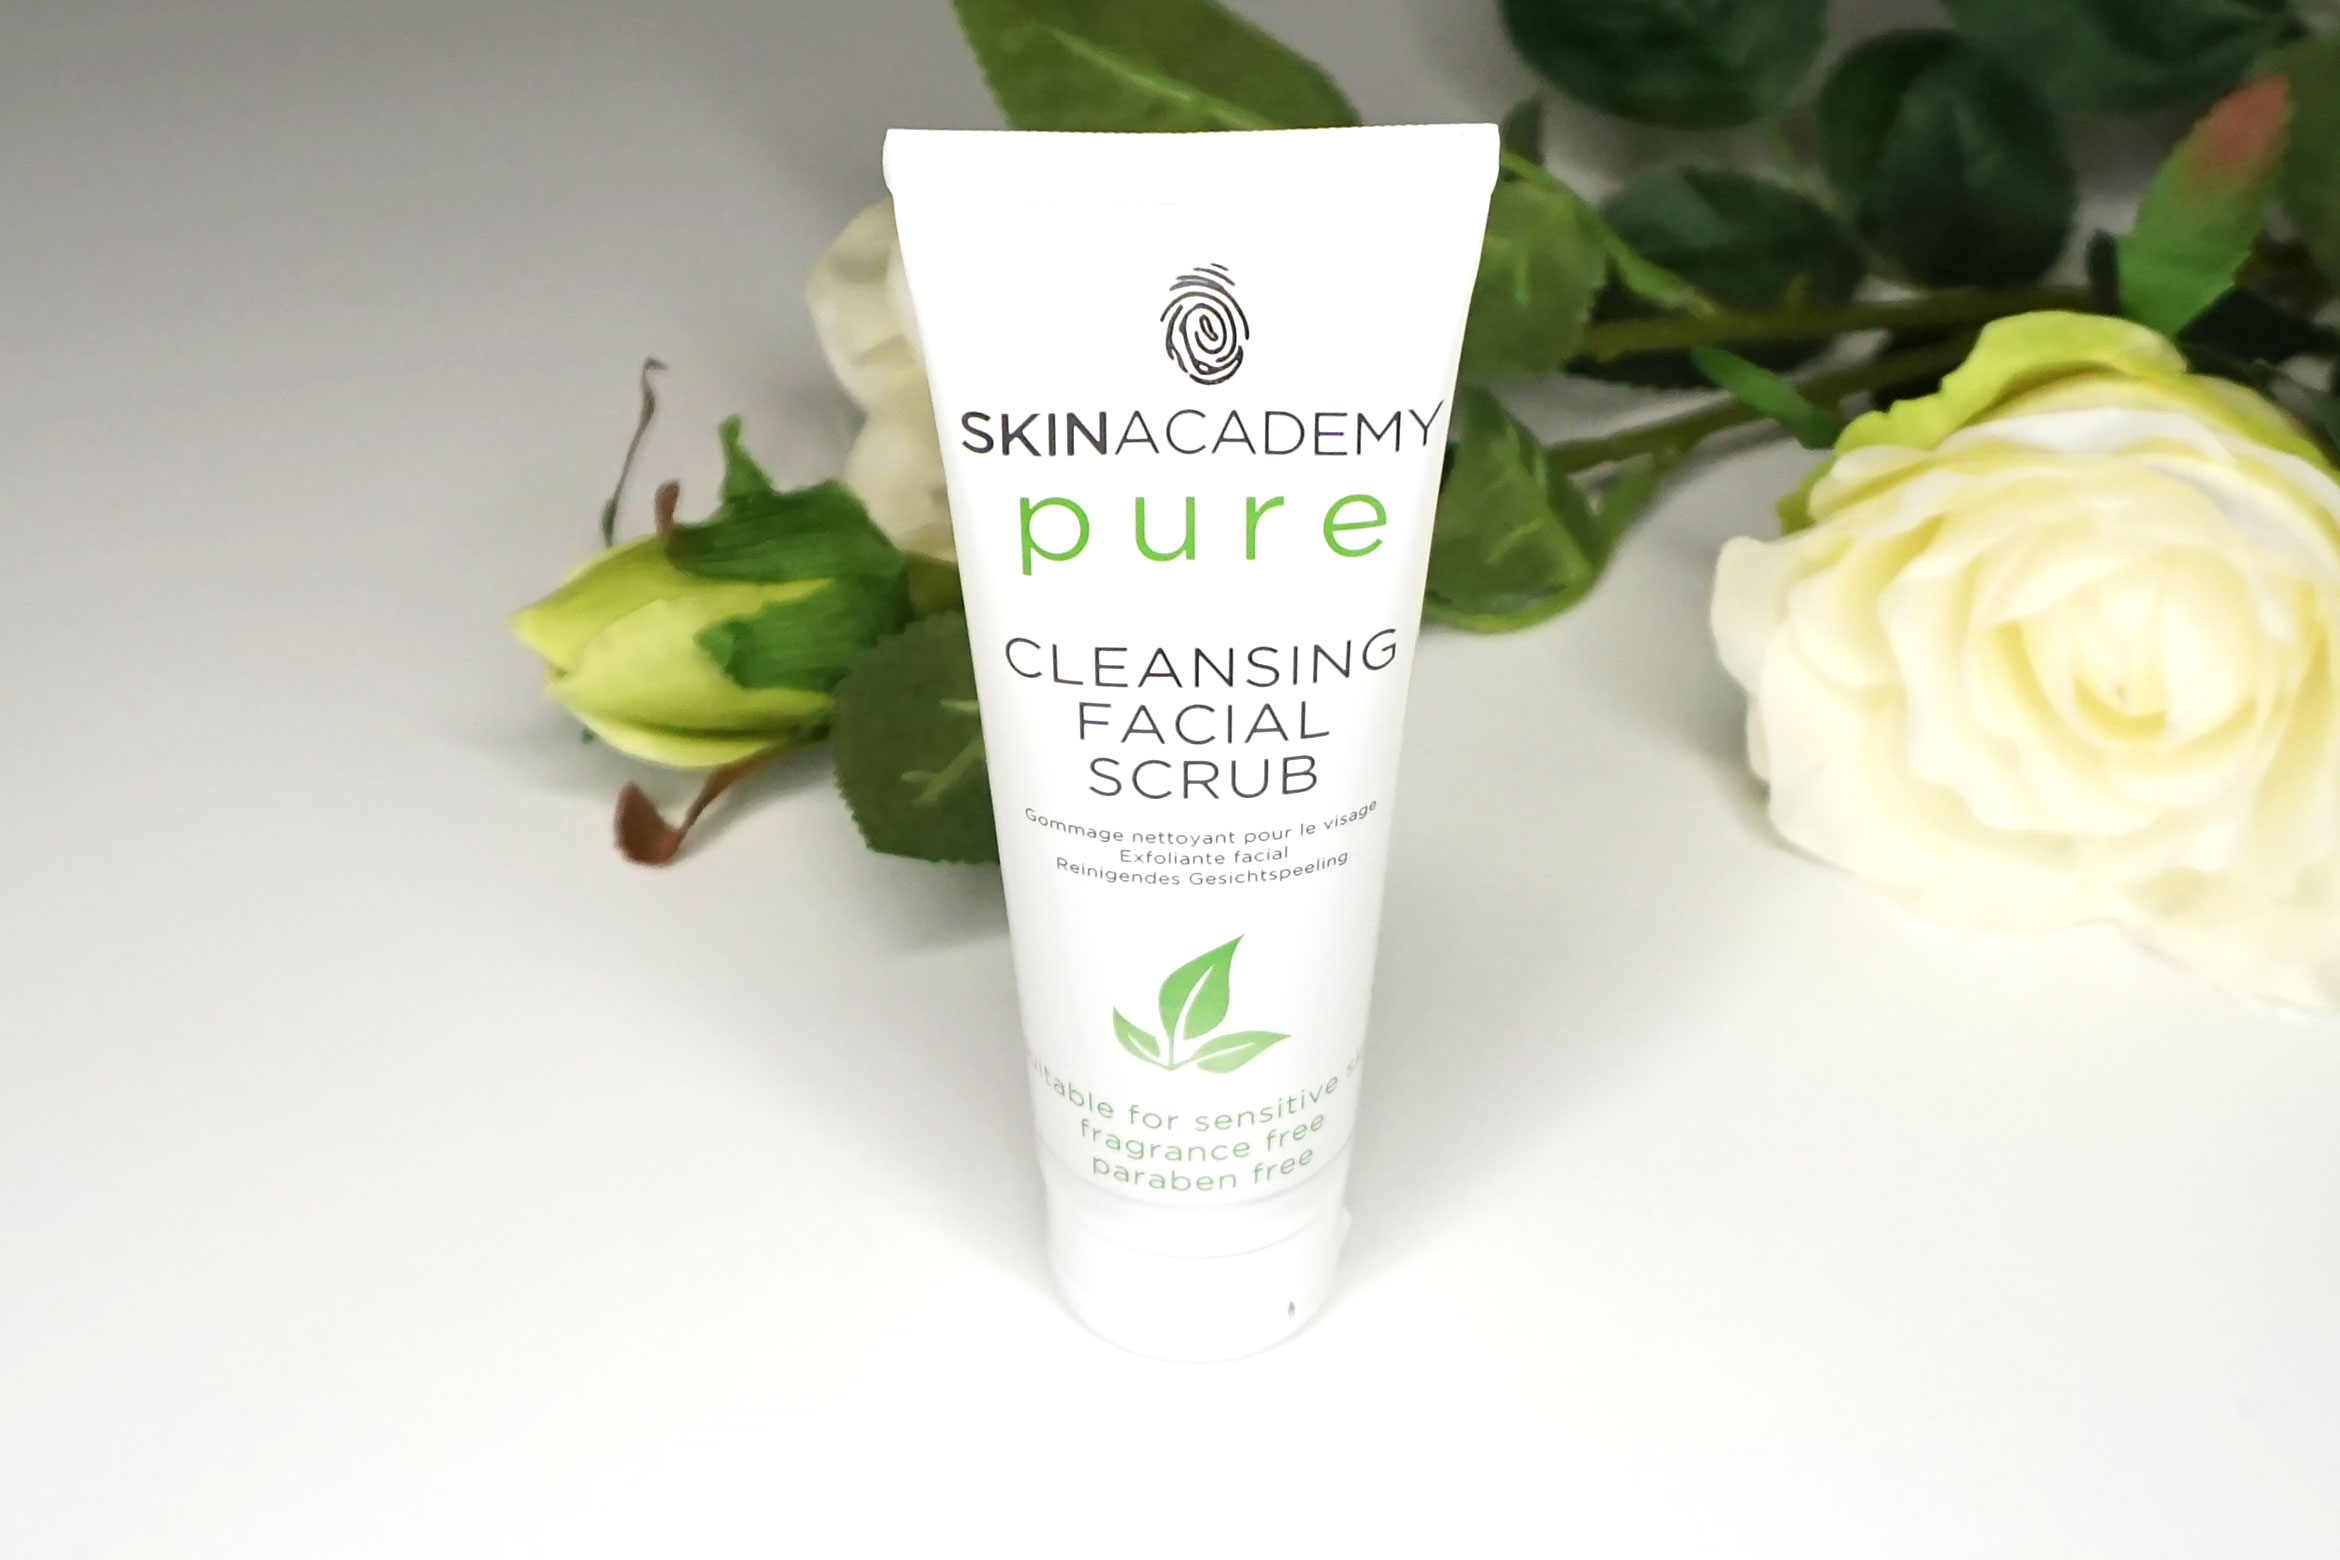 skinacademy-pure-cleansing-facial-scrub-review